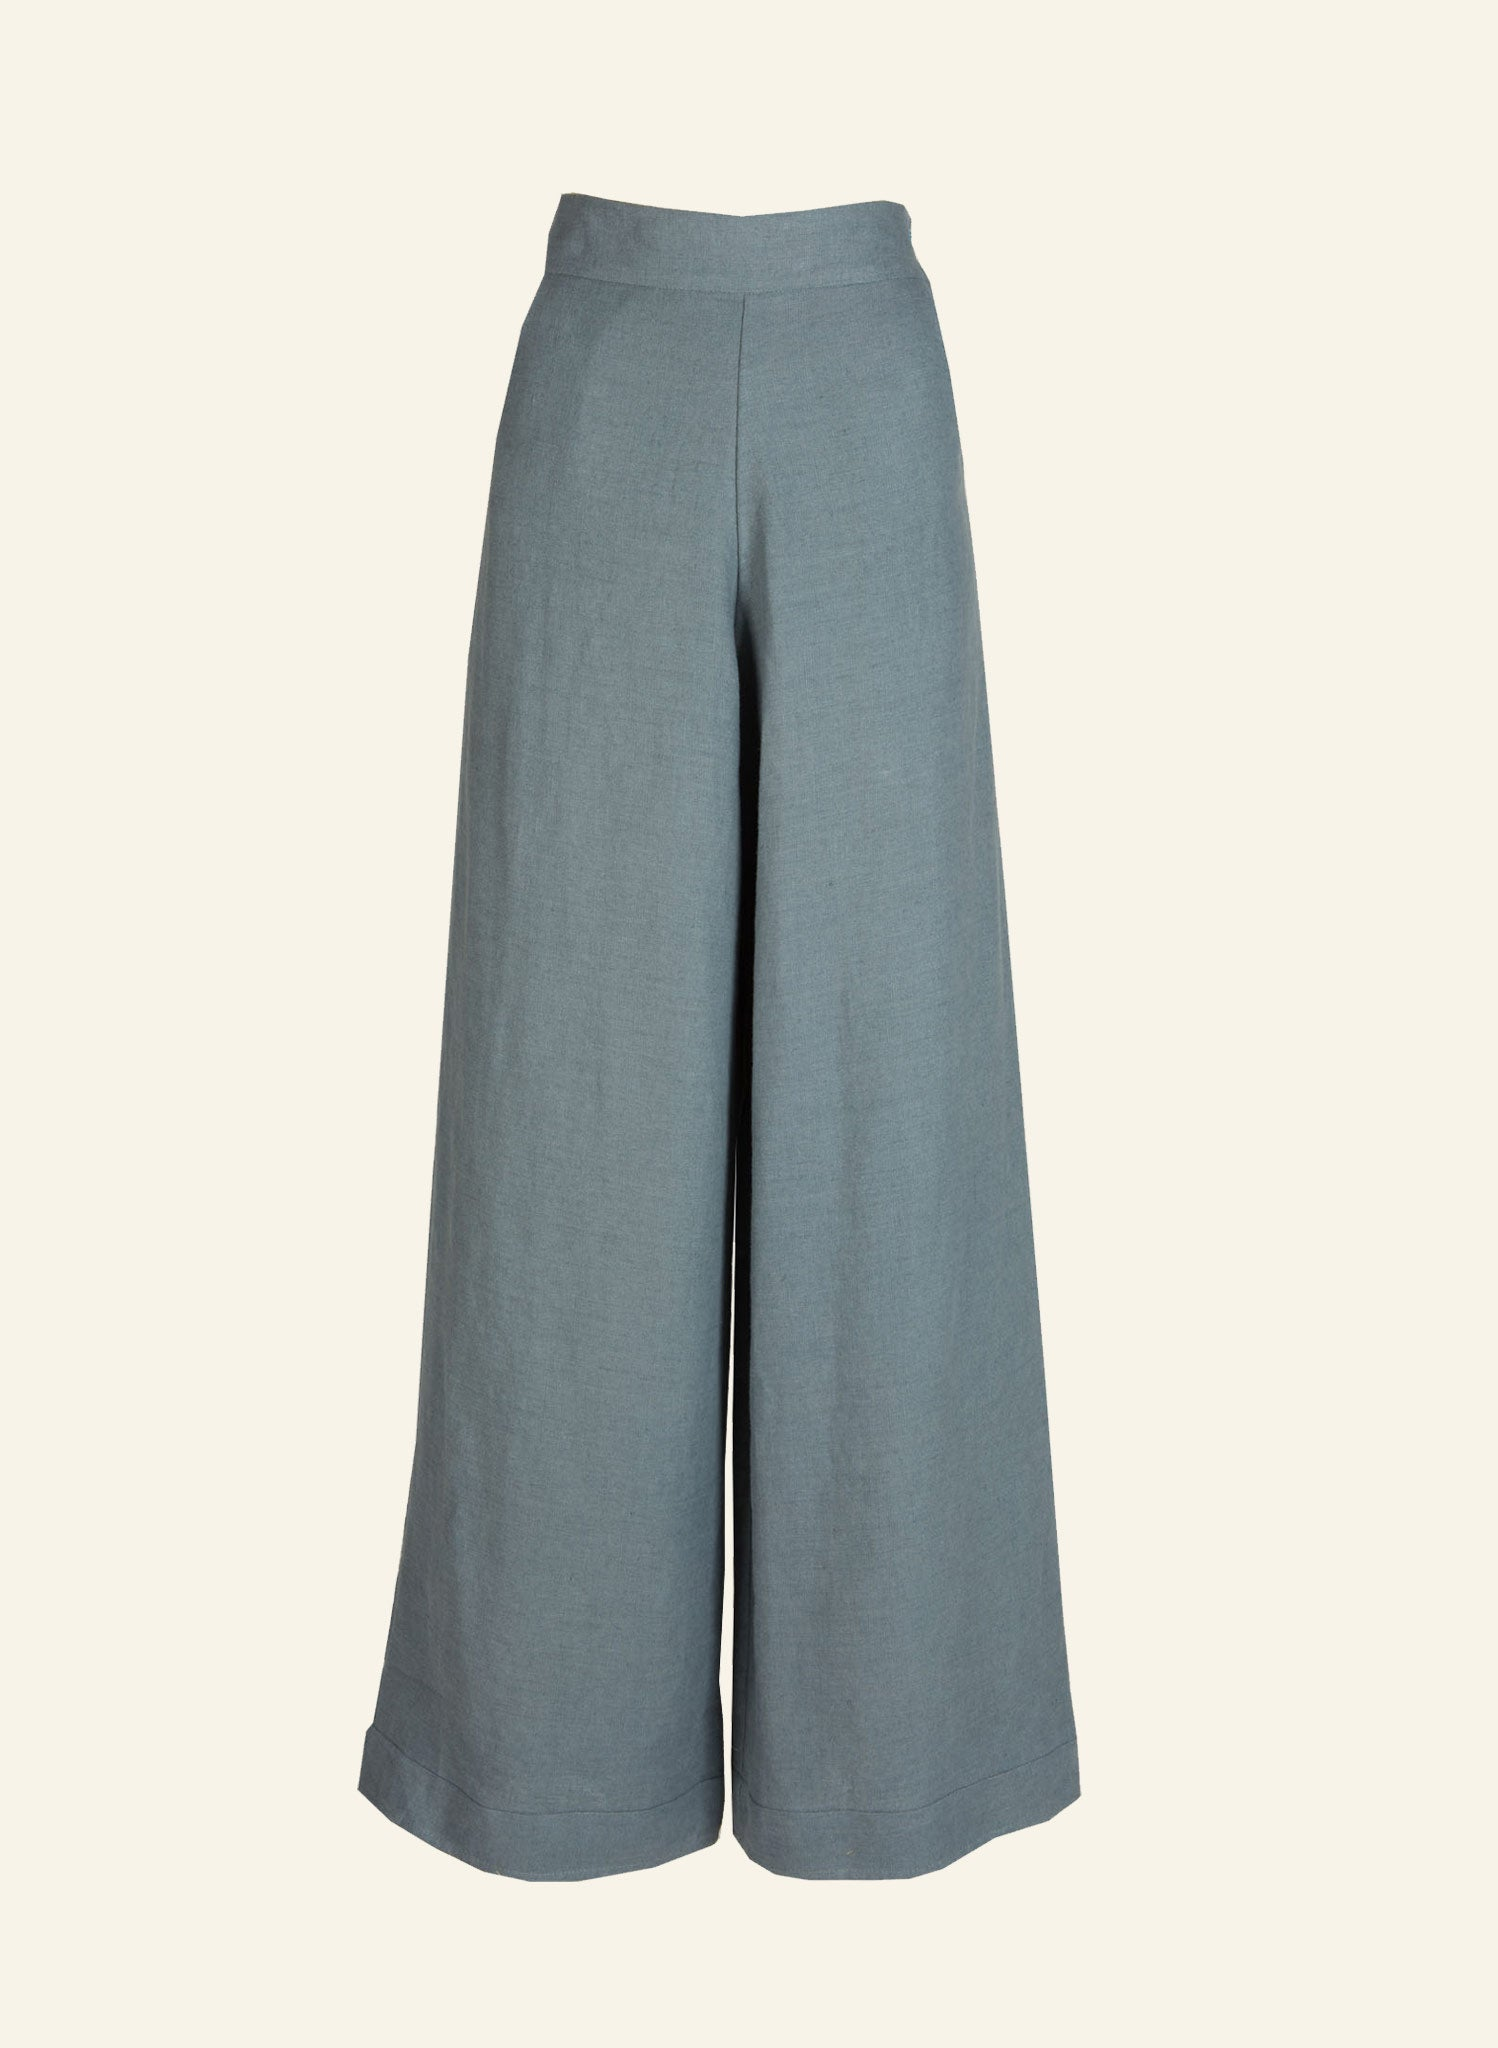 Josephine - Chalk Blue Linen Trousers